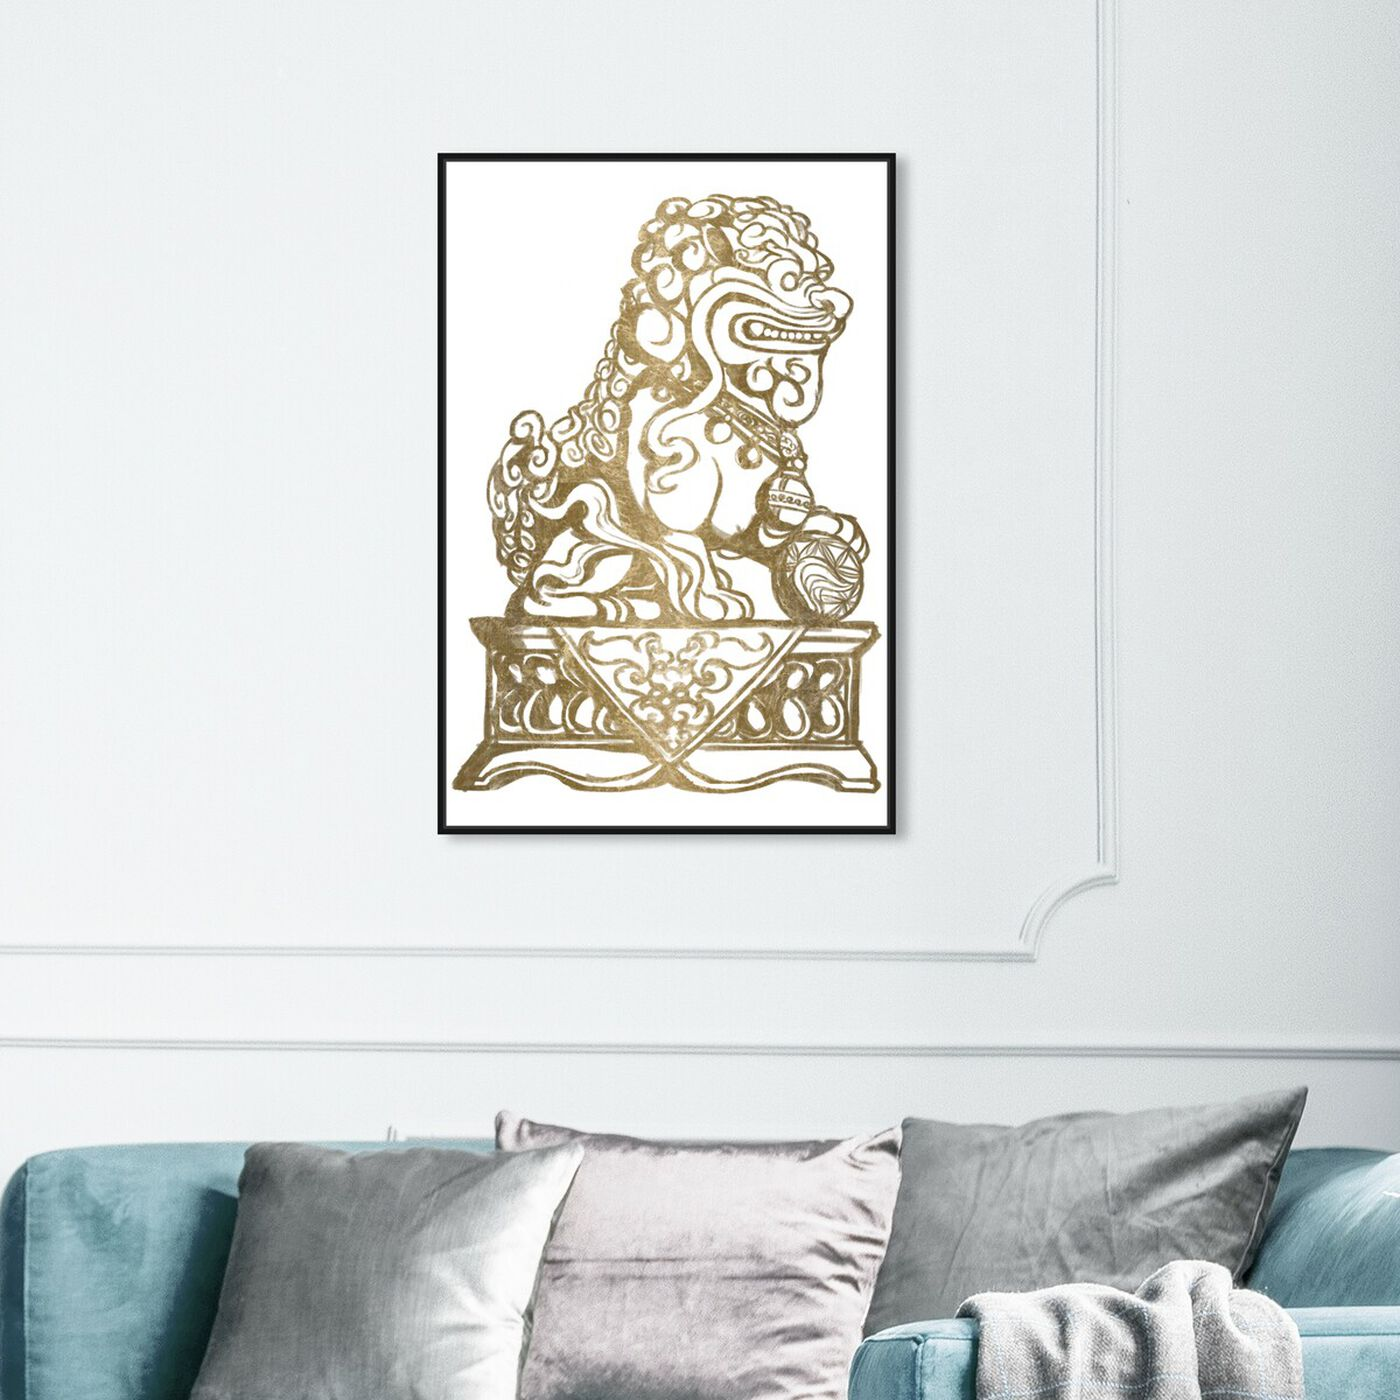 Hanging view of Foo Dog Gold II featuring symbols and objects and symbols art.